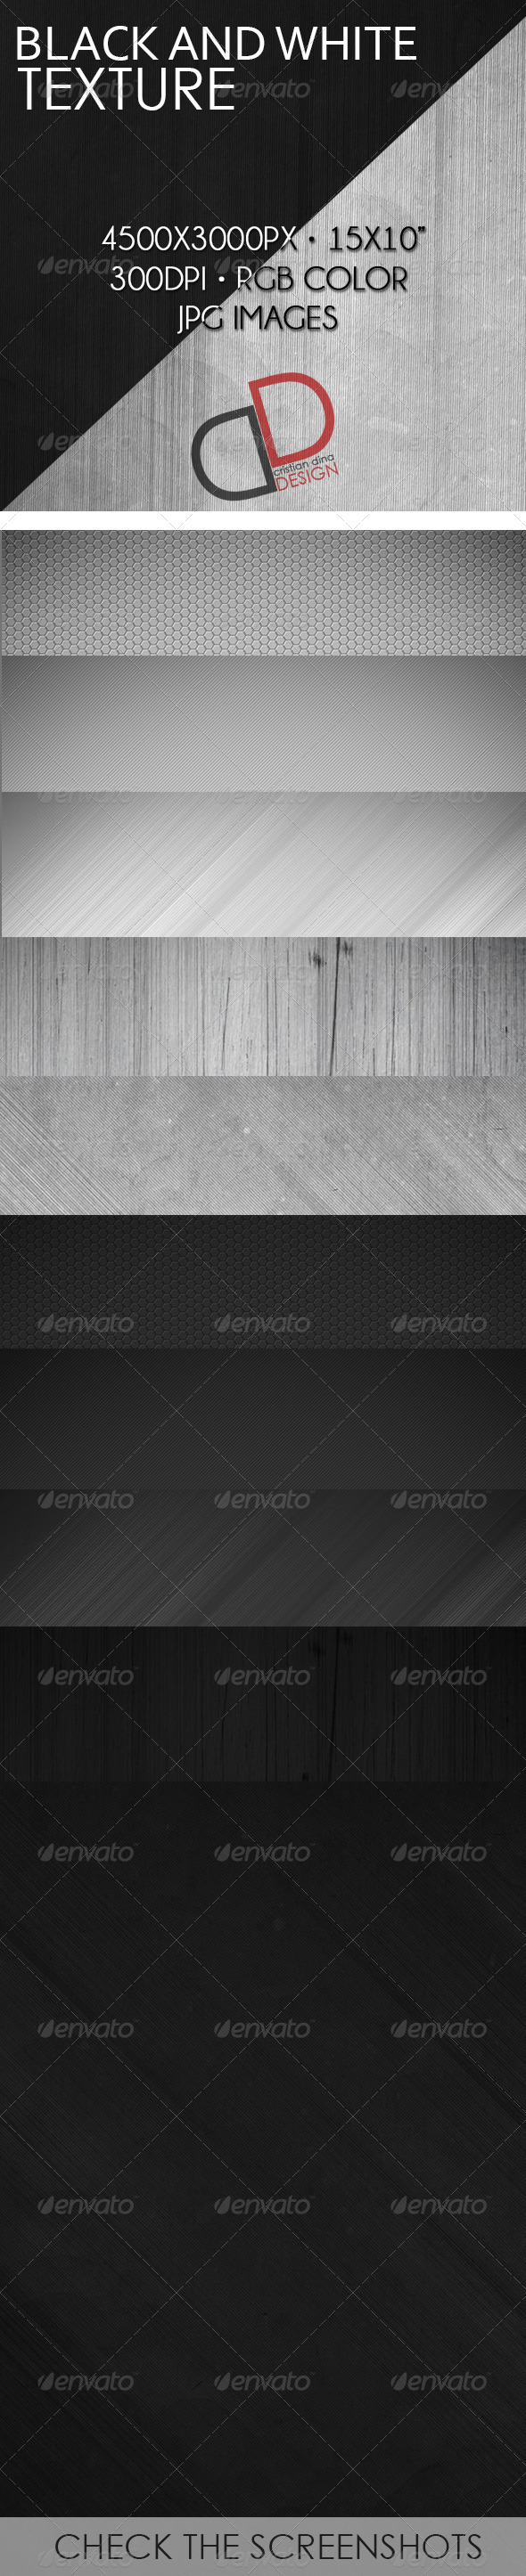 GraphicRiver Black and White Texture 6785704